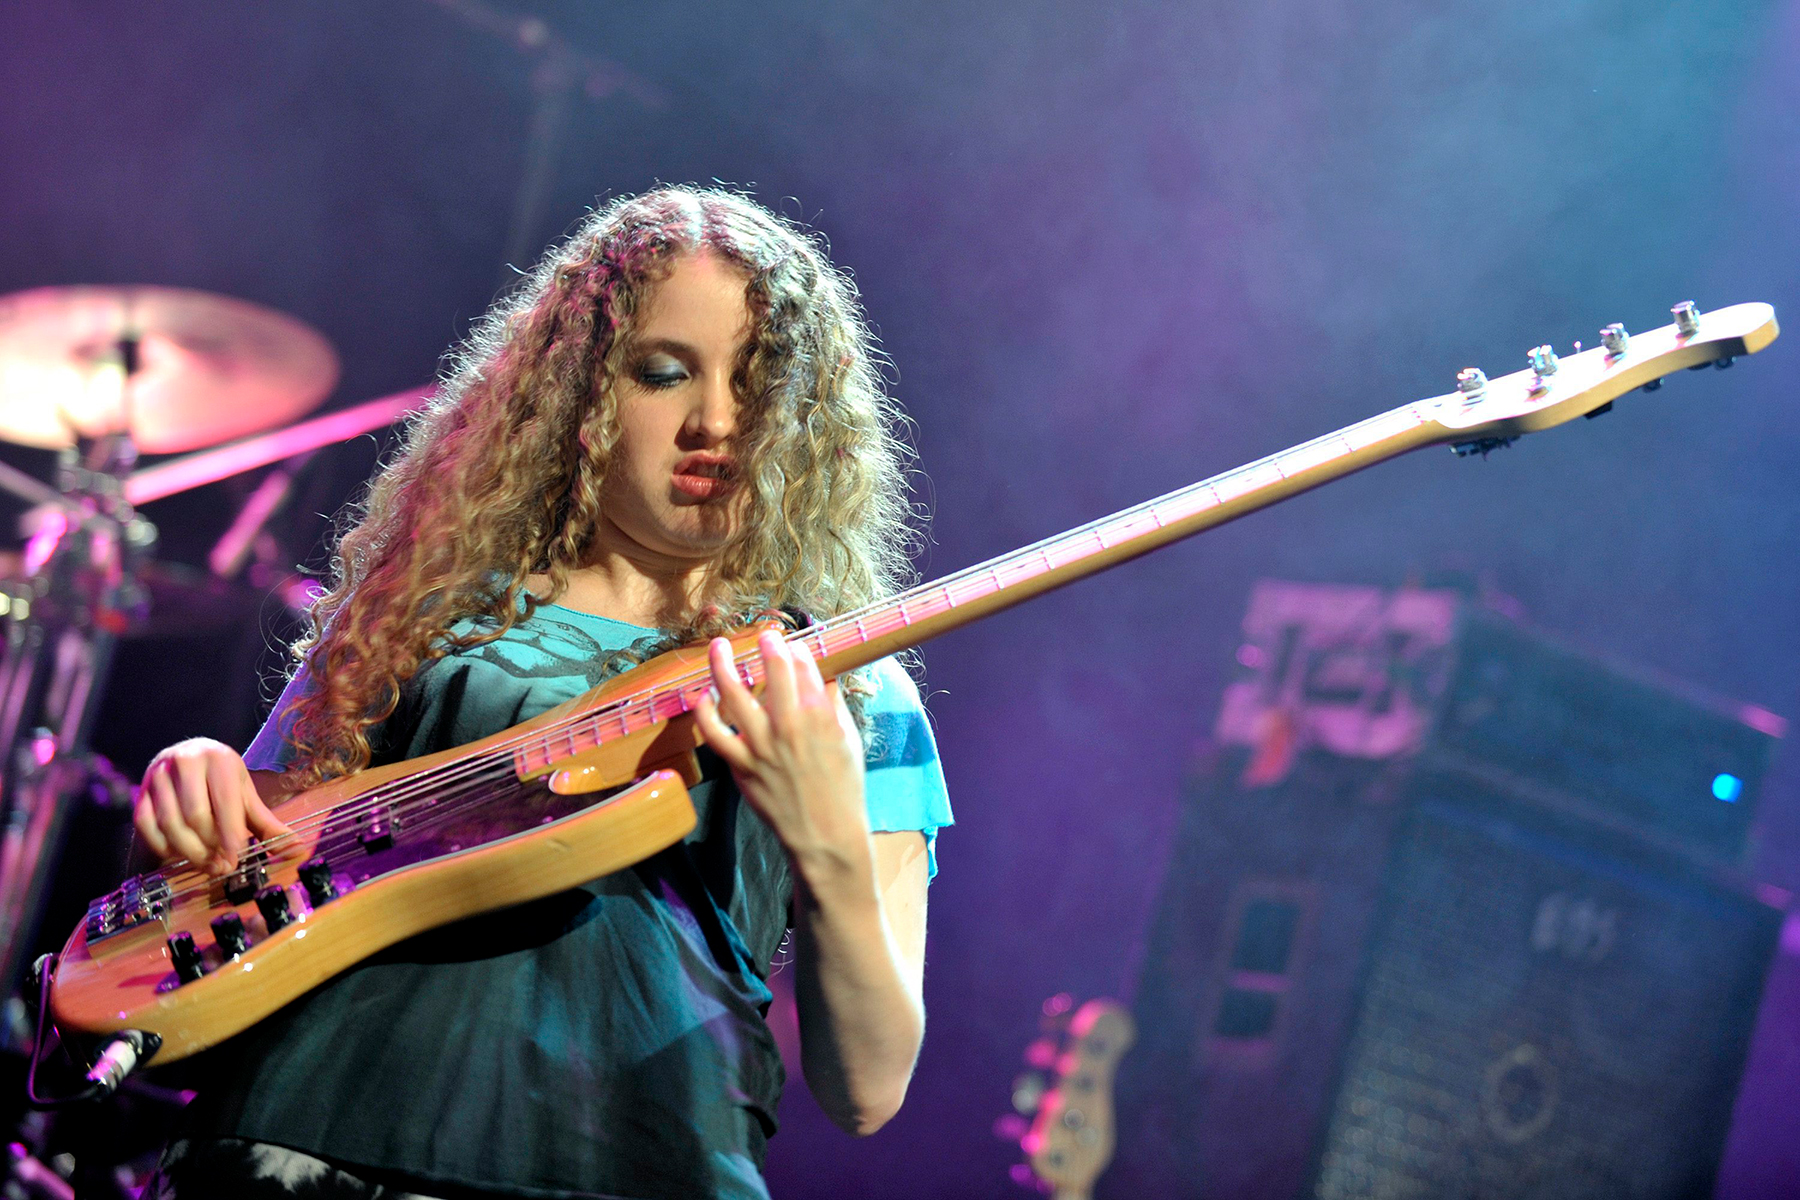 Australian bassist Tal Wilkenfeld performing live with US jazz pianist and composer Herbie Hancock on the Stravinski Hall stage at the 44th Montreux Jazz Festival, in Montreux, Switzerland, late Friday, July 16, 2010. (AP Photo/Keystone, Martial Trezzini)